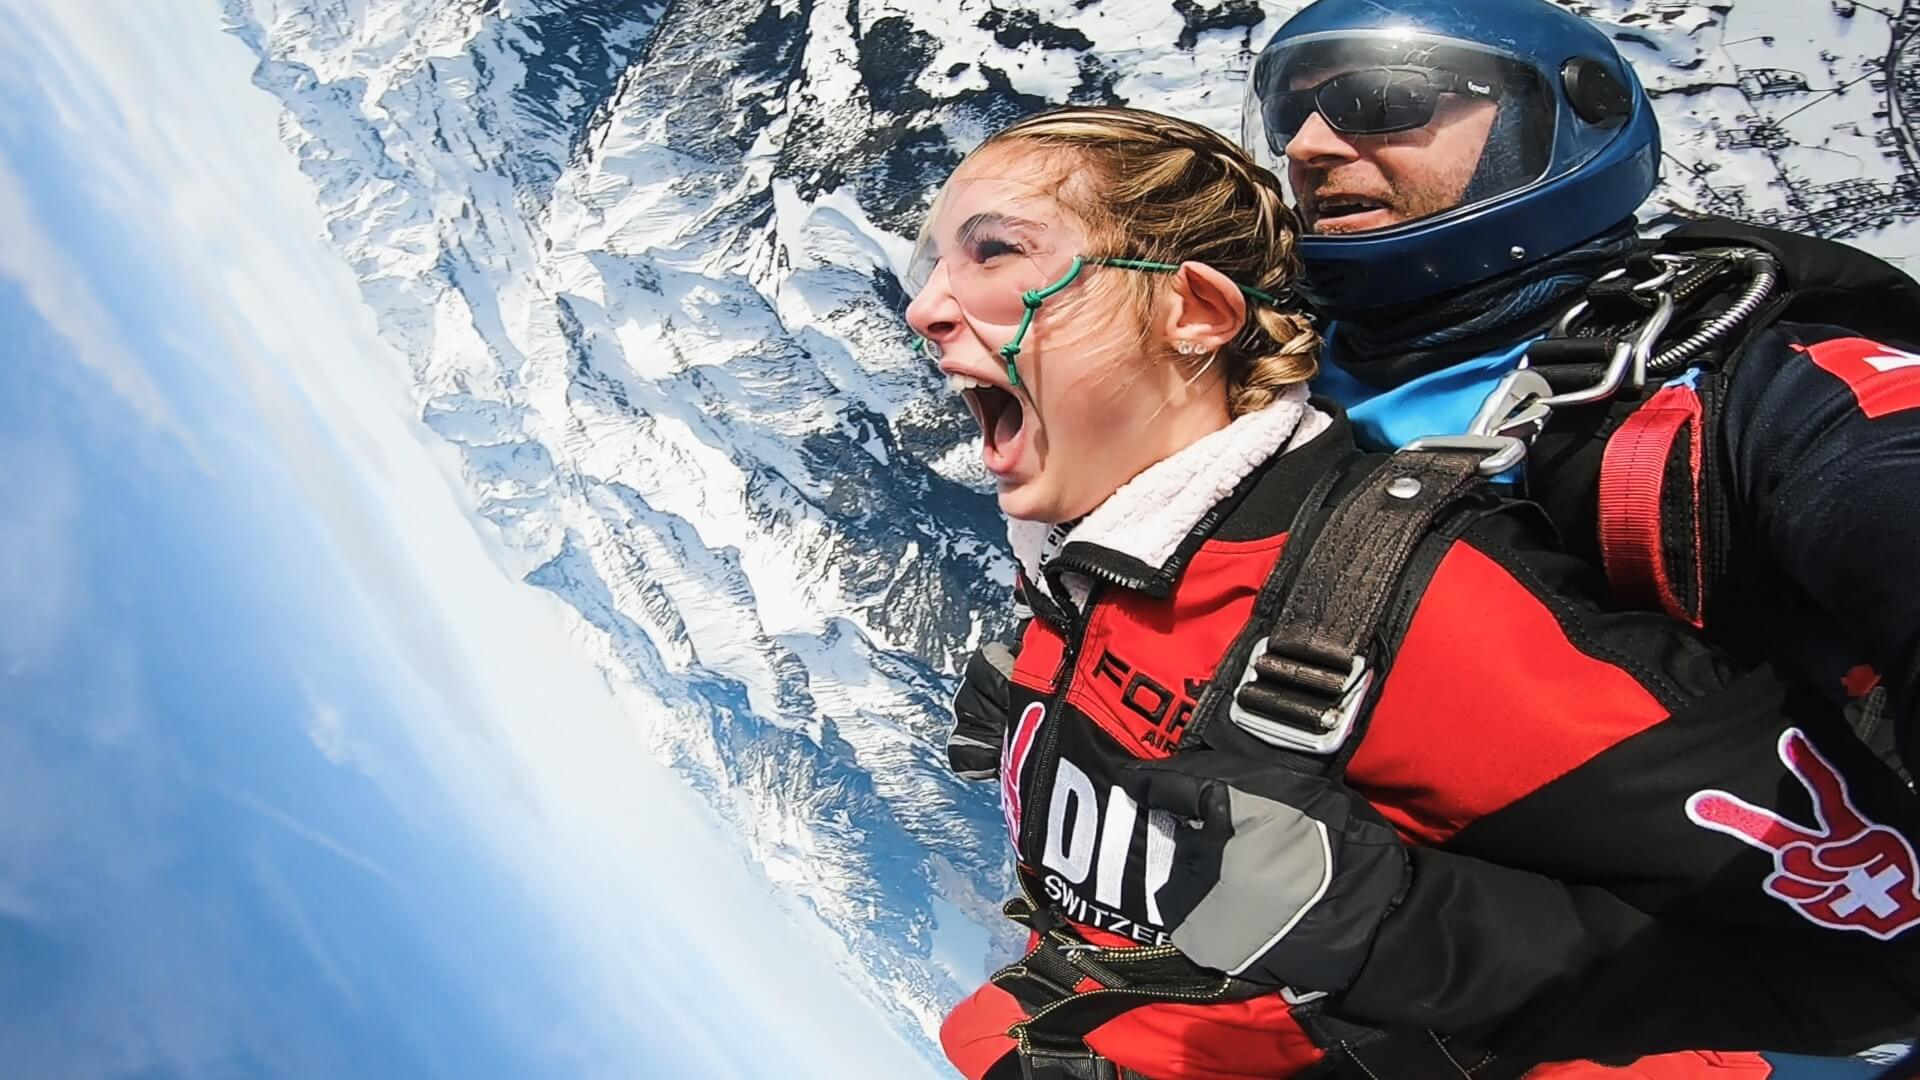 skydive-switzerland-sprung-winter-upsidedown